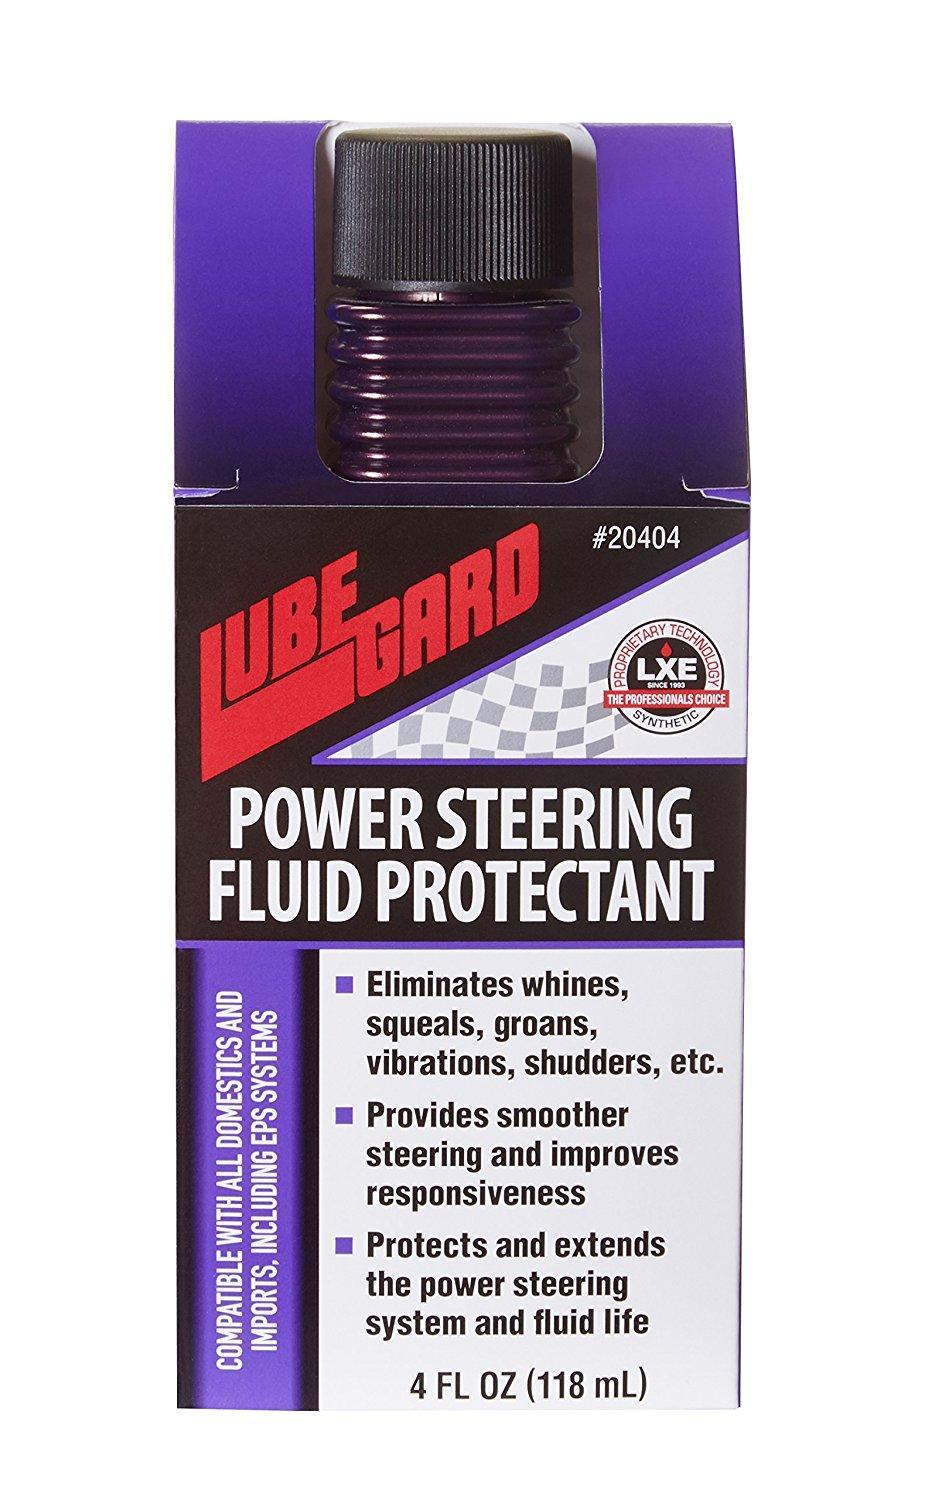 Power Steering Fluids For Sale Oil Online Brands So Is This Basically A Pump Rebuild Lubegard 20404 Universal Fluid Protectant 4 Fl Oz